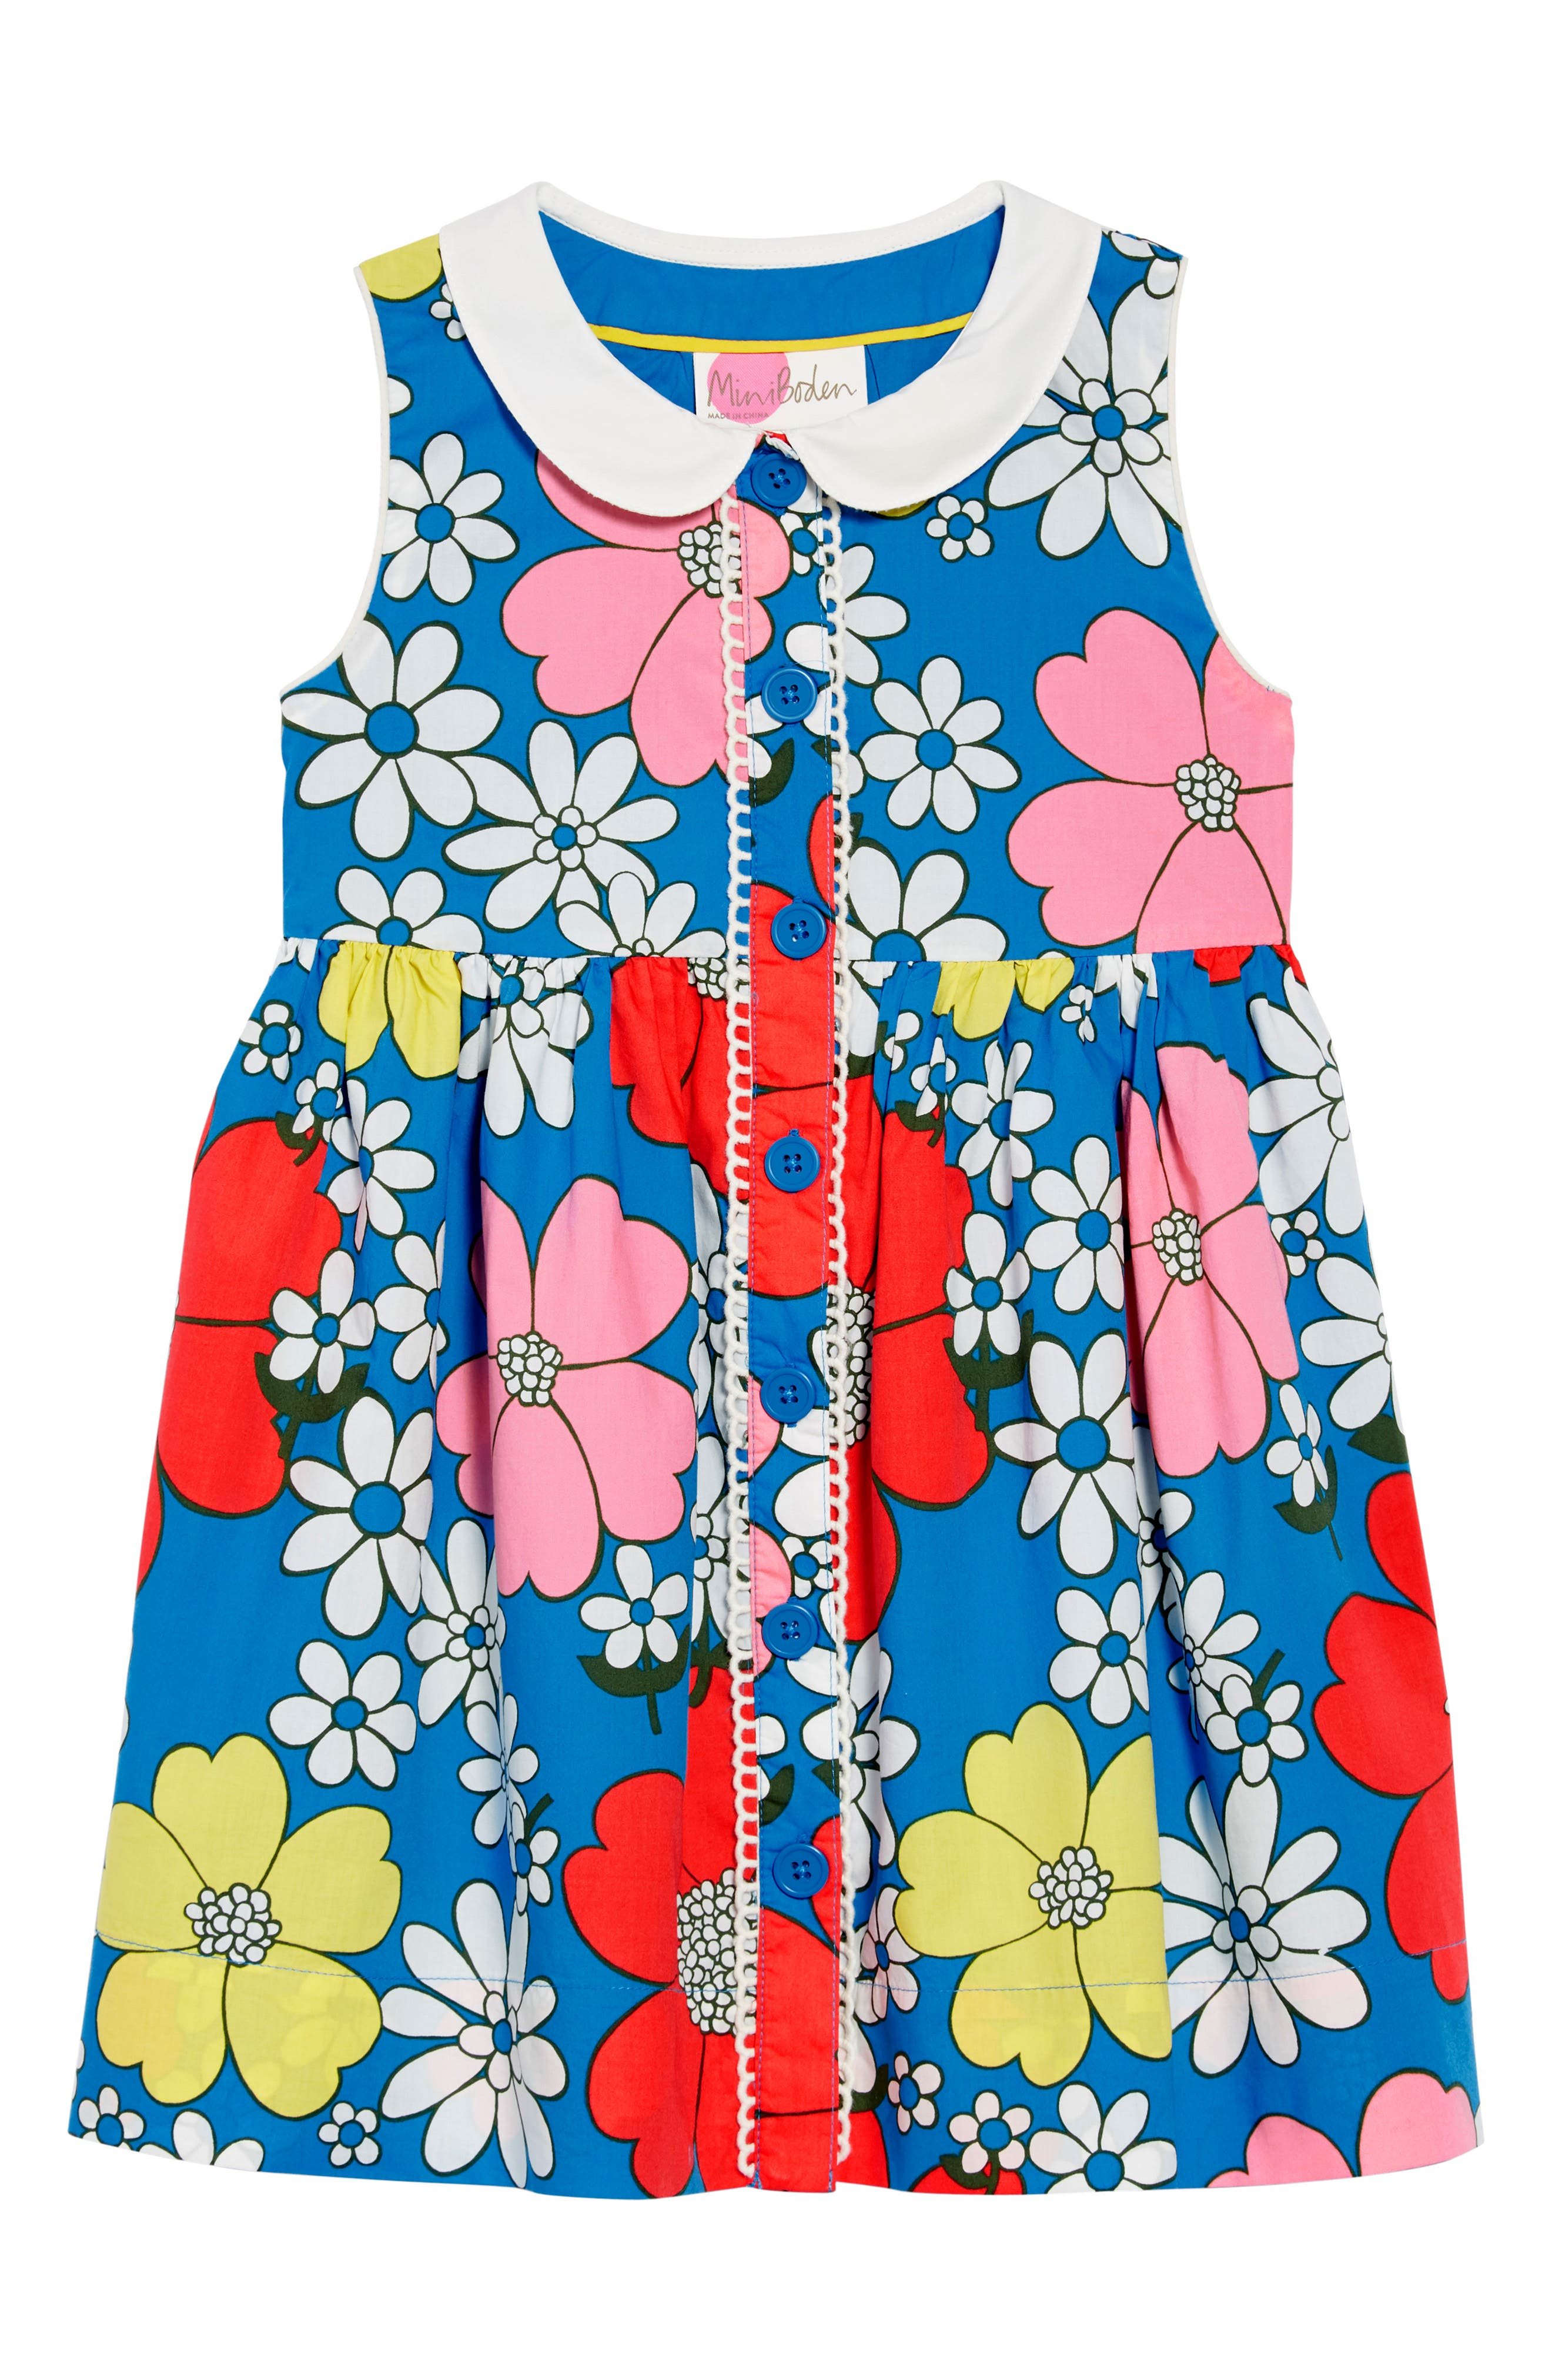 Floral Collared Dress,                         Main,                         color, Blufluro Blue Flower Power